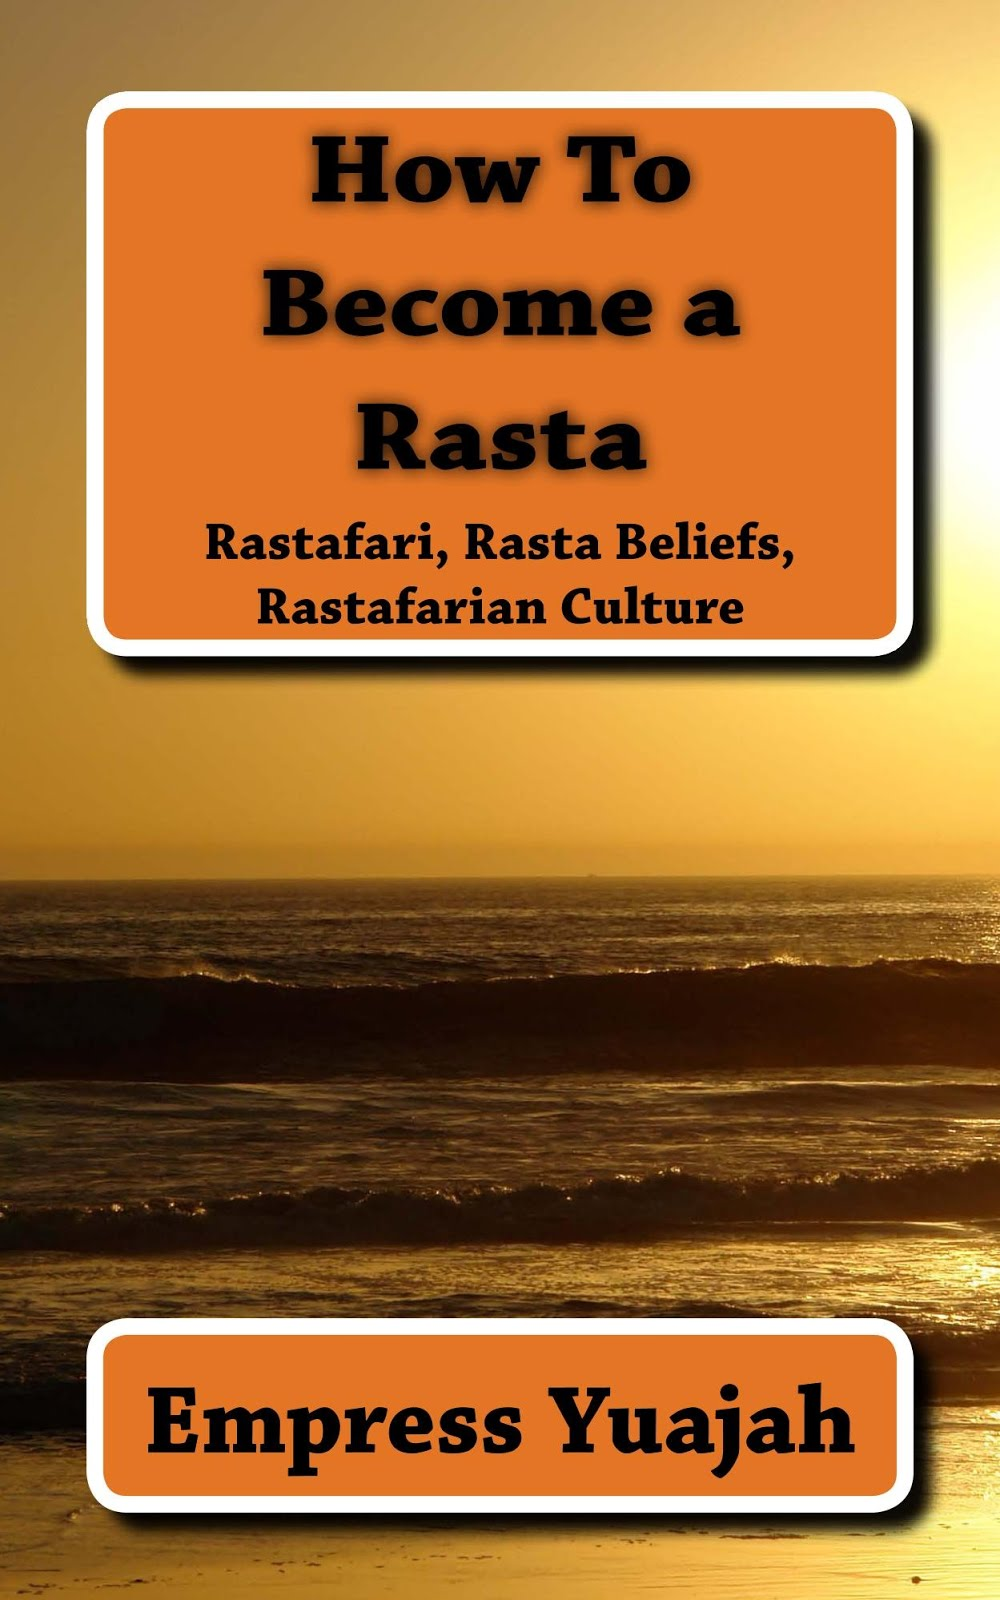 How to Become a Rasta